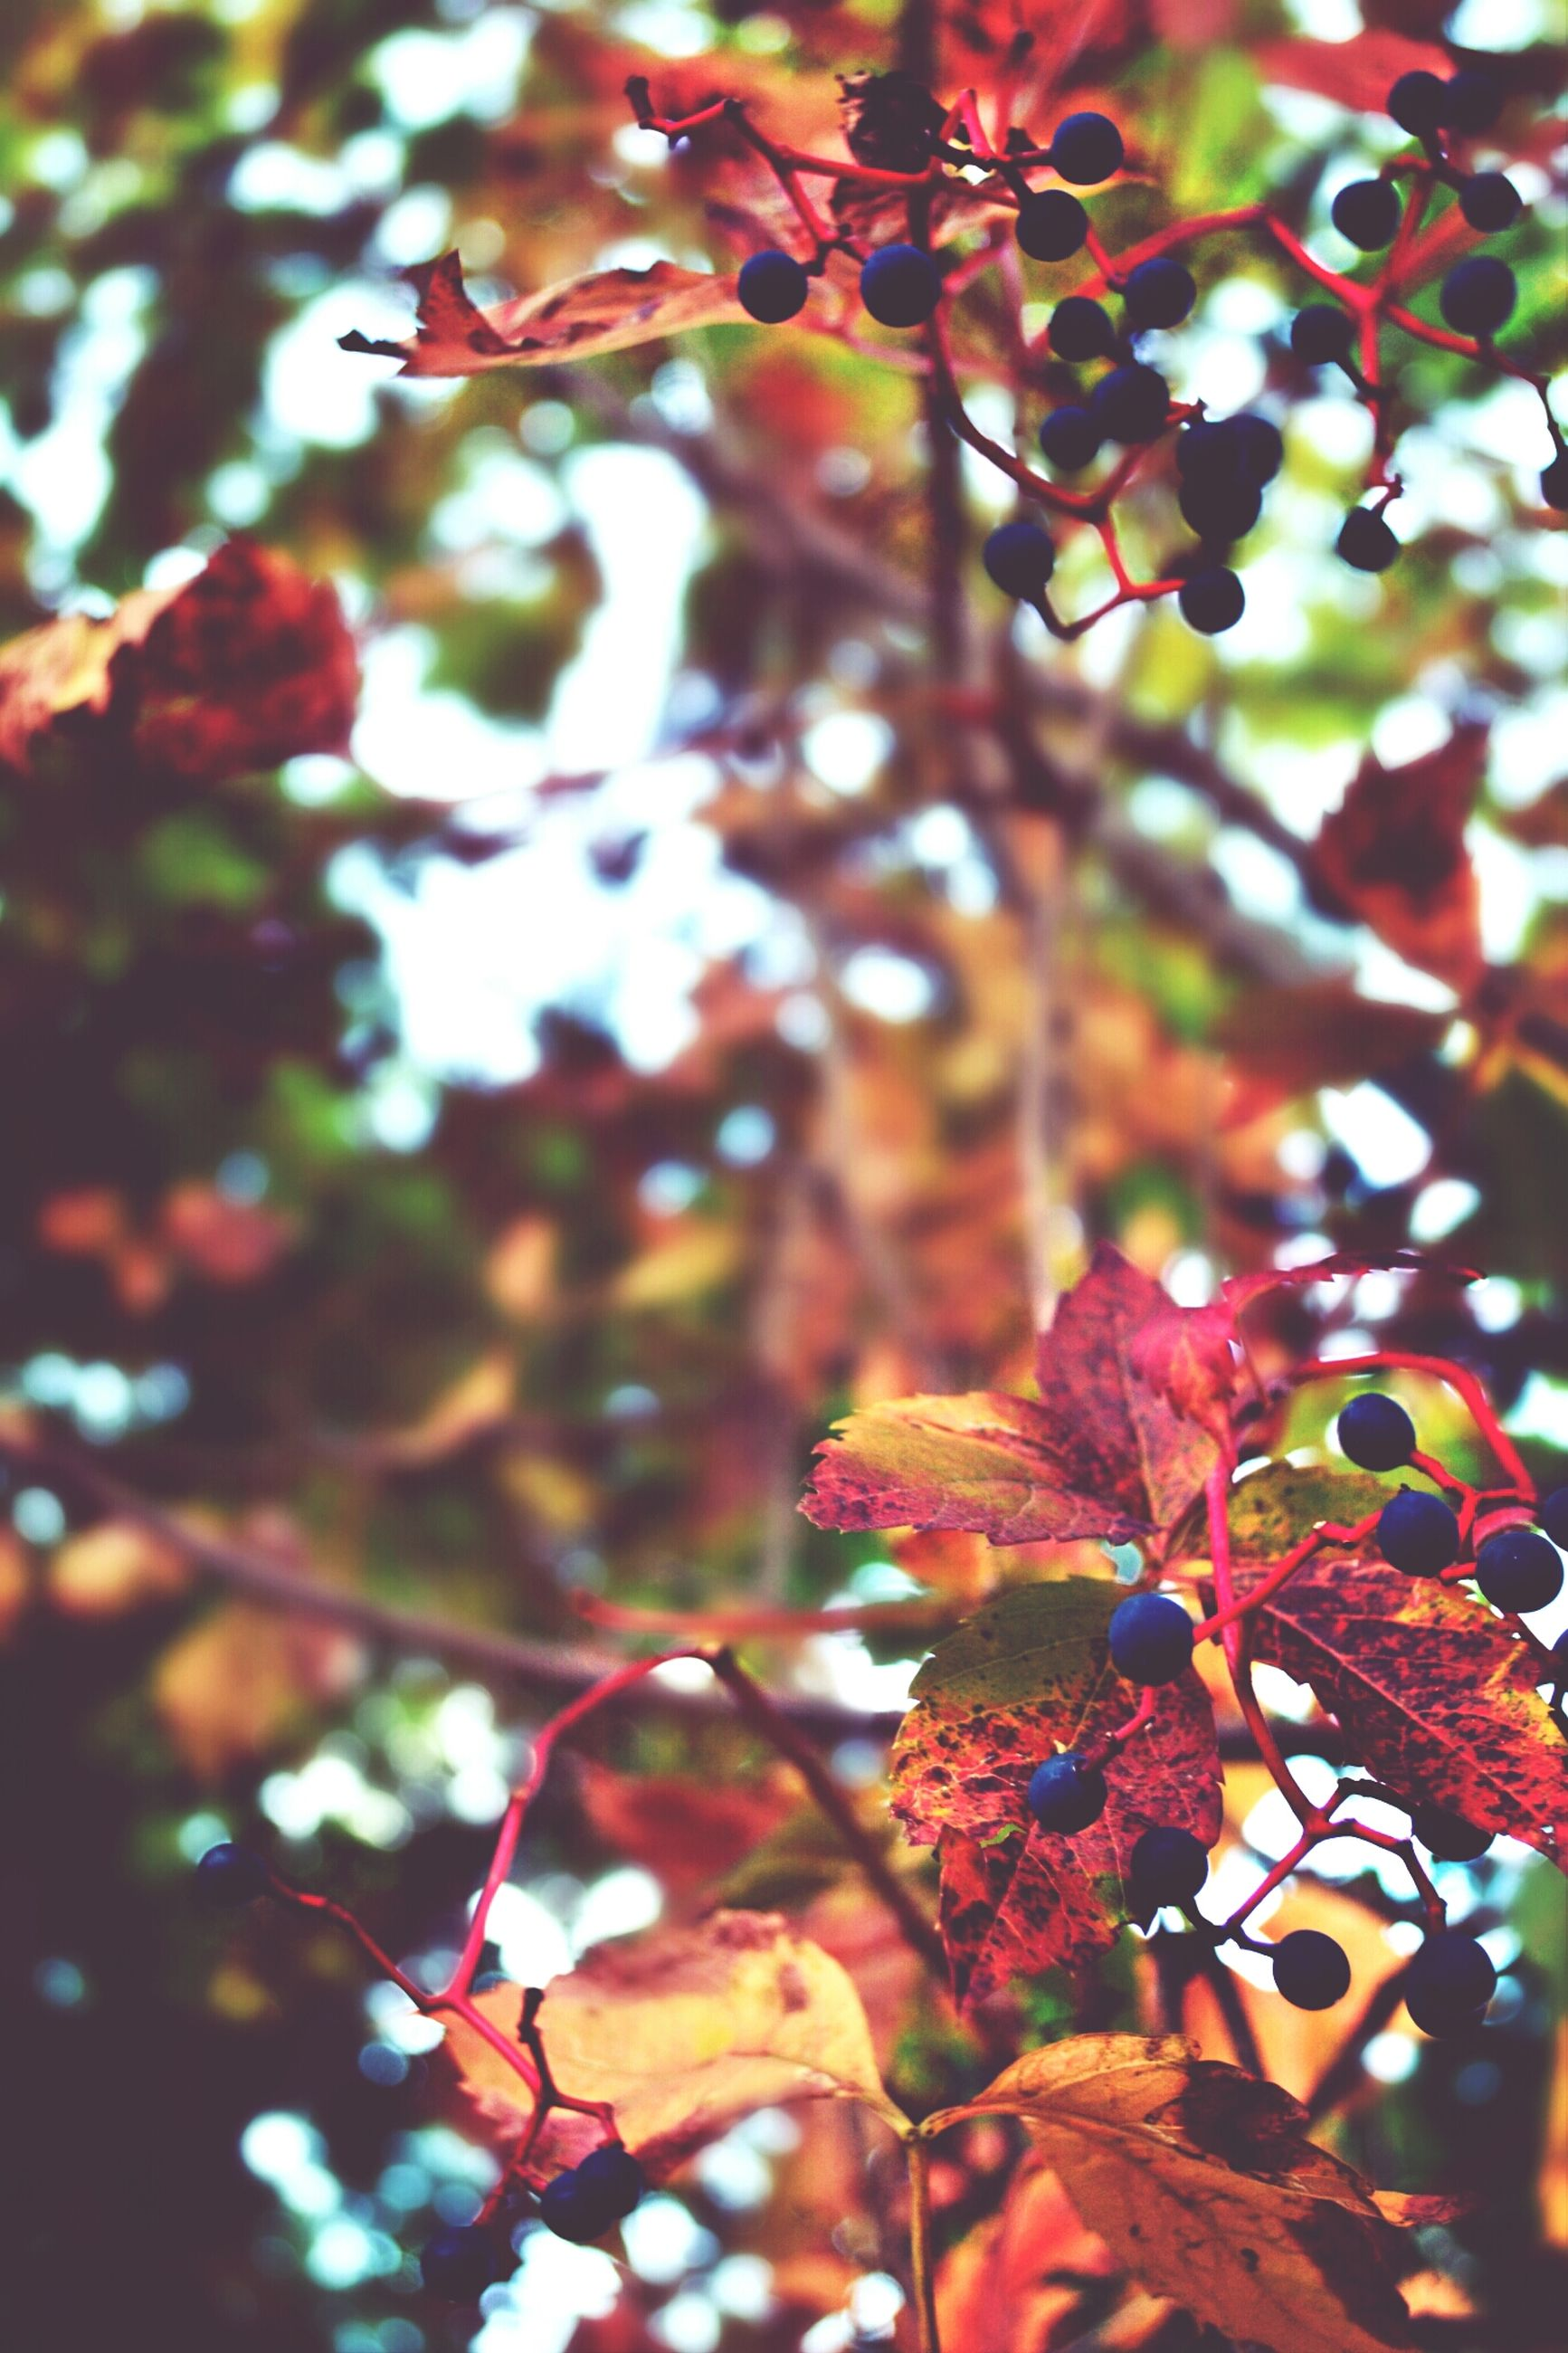 tree, leaf, branch, focus on foreground, growth, close-up, nature, low angle view, autumn, change, red, beauty in nature, day, season, outdoors, selective focus, leaves, no people, sunlight, twig